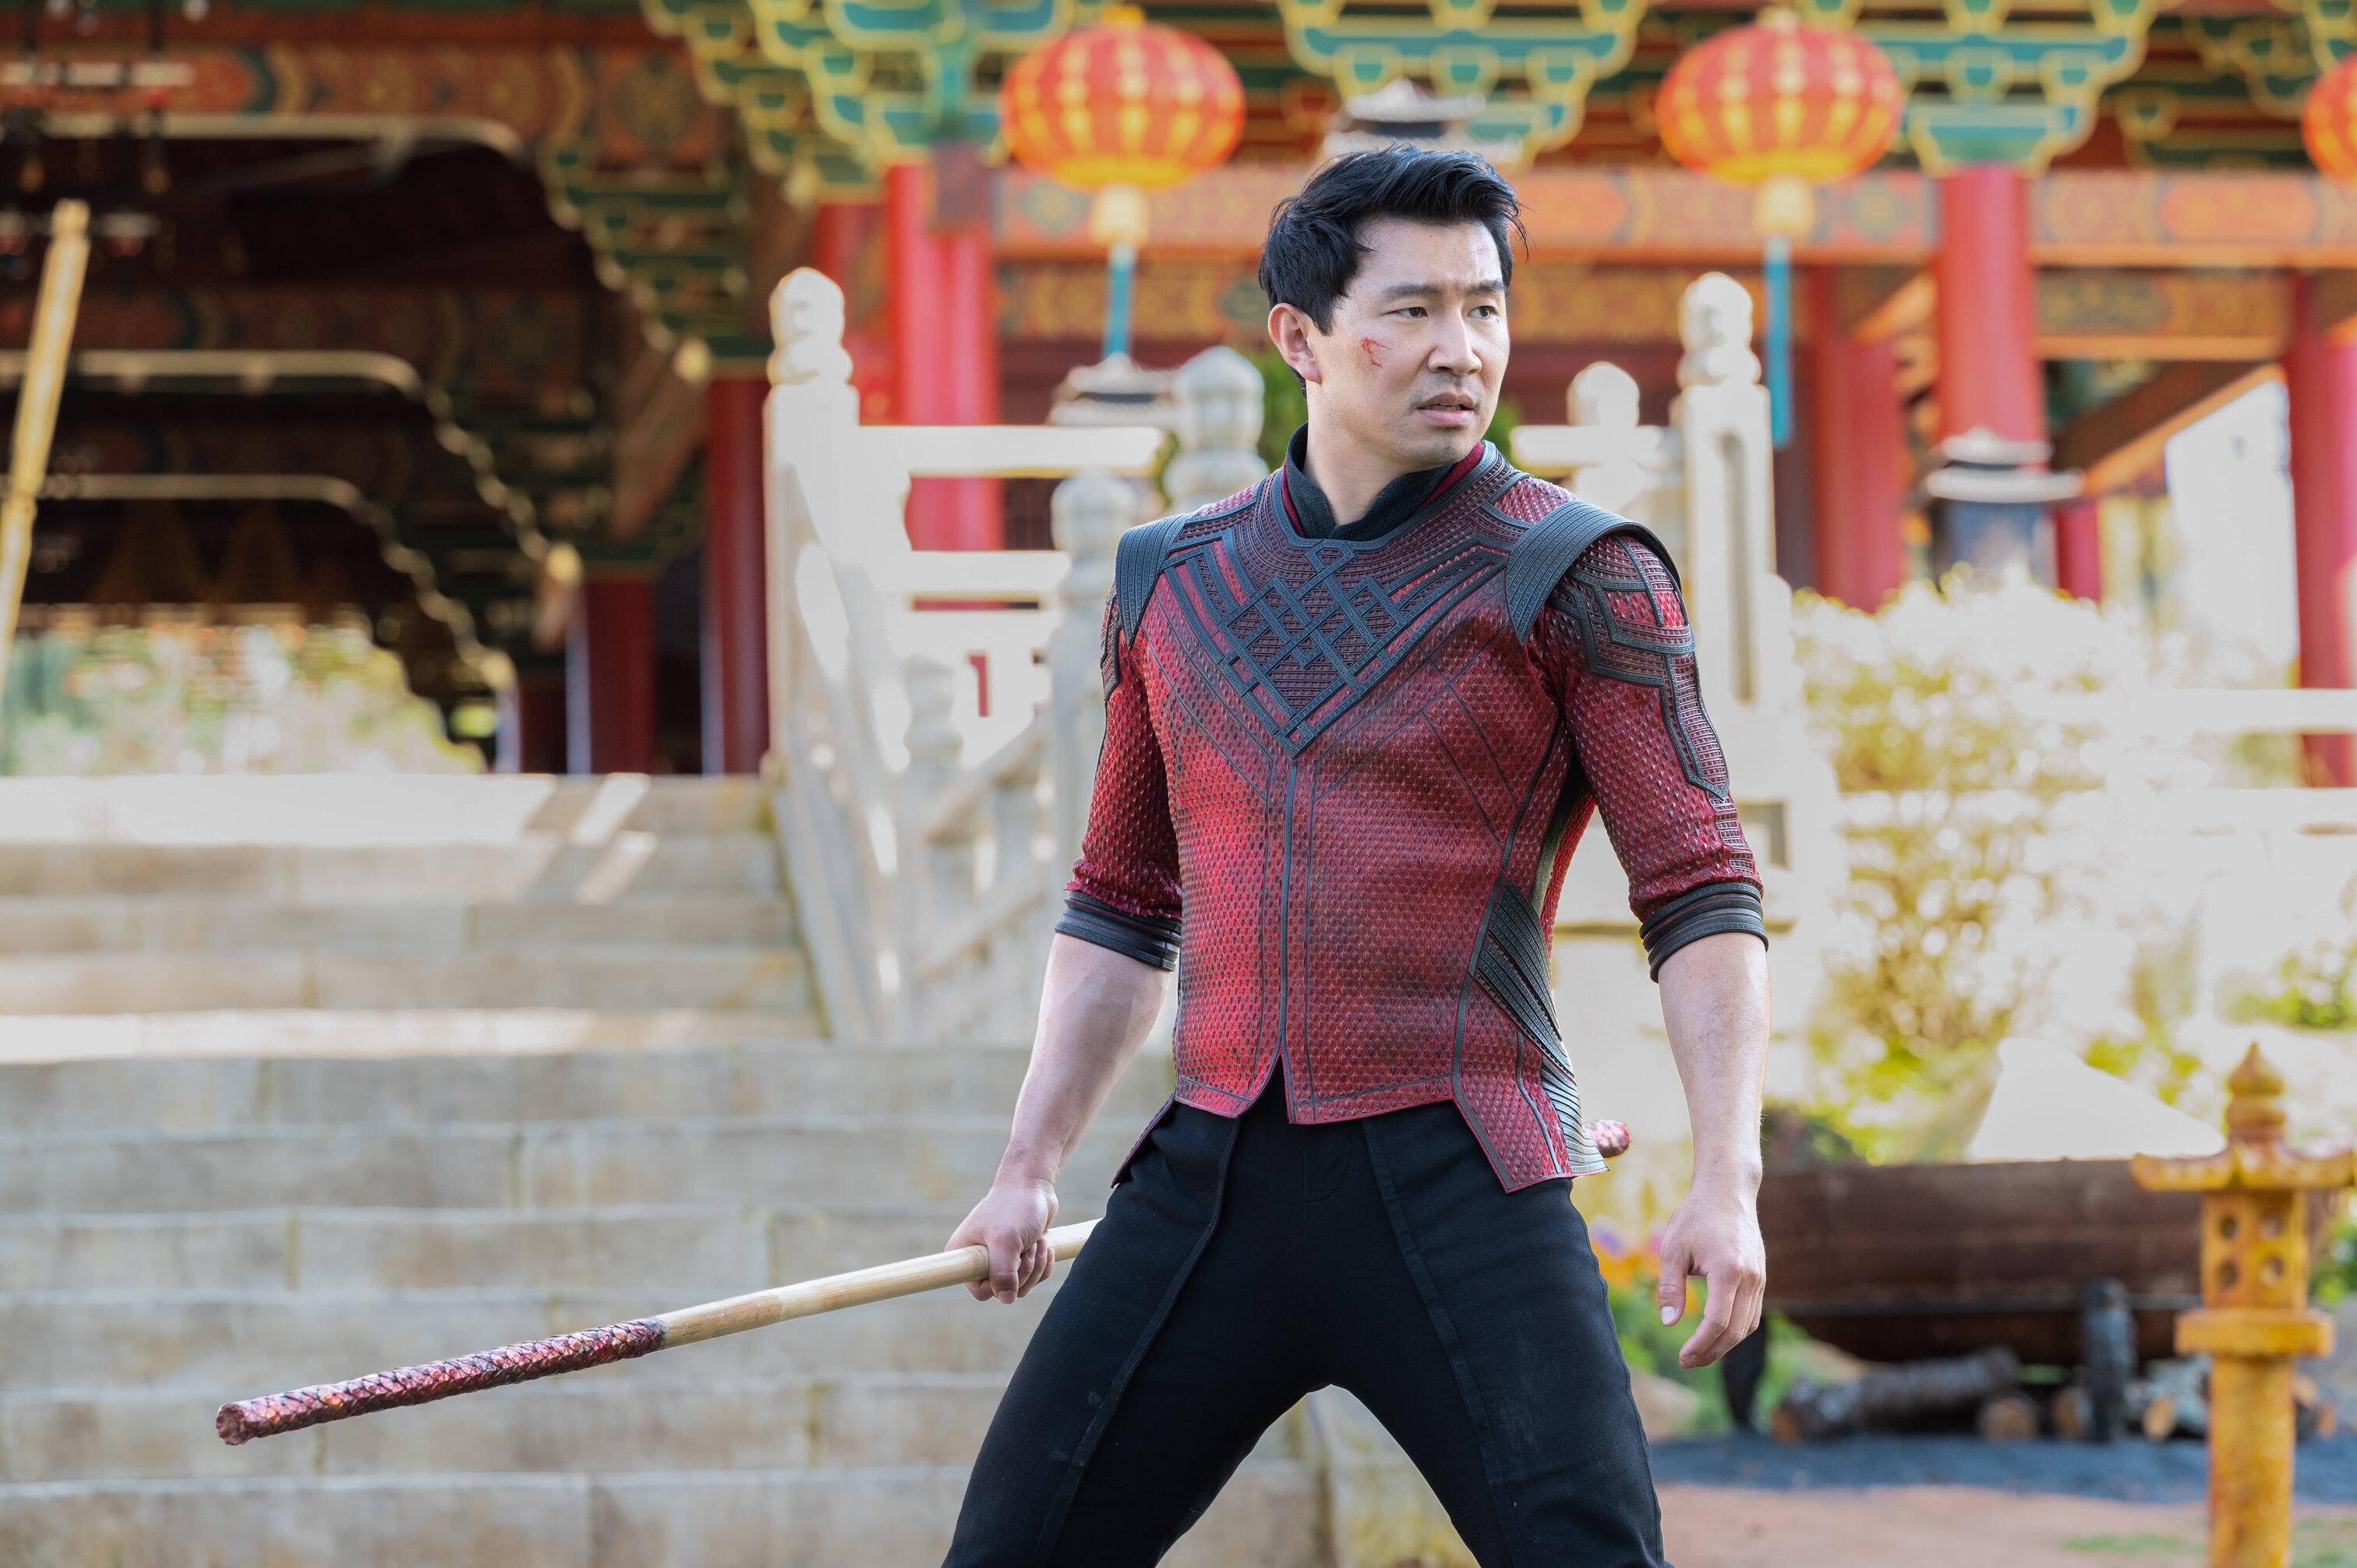 16 movies include Shang-Chi and the Legend of the Ten Rings, where Shang-Chi returns when he's compelled to figure out the Ten Rings organization.